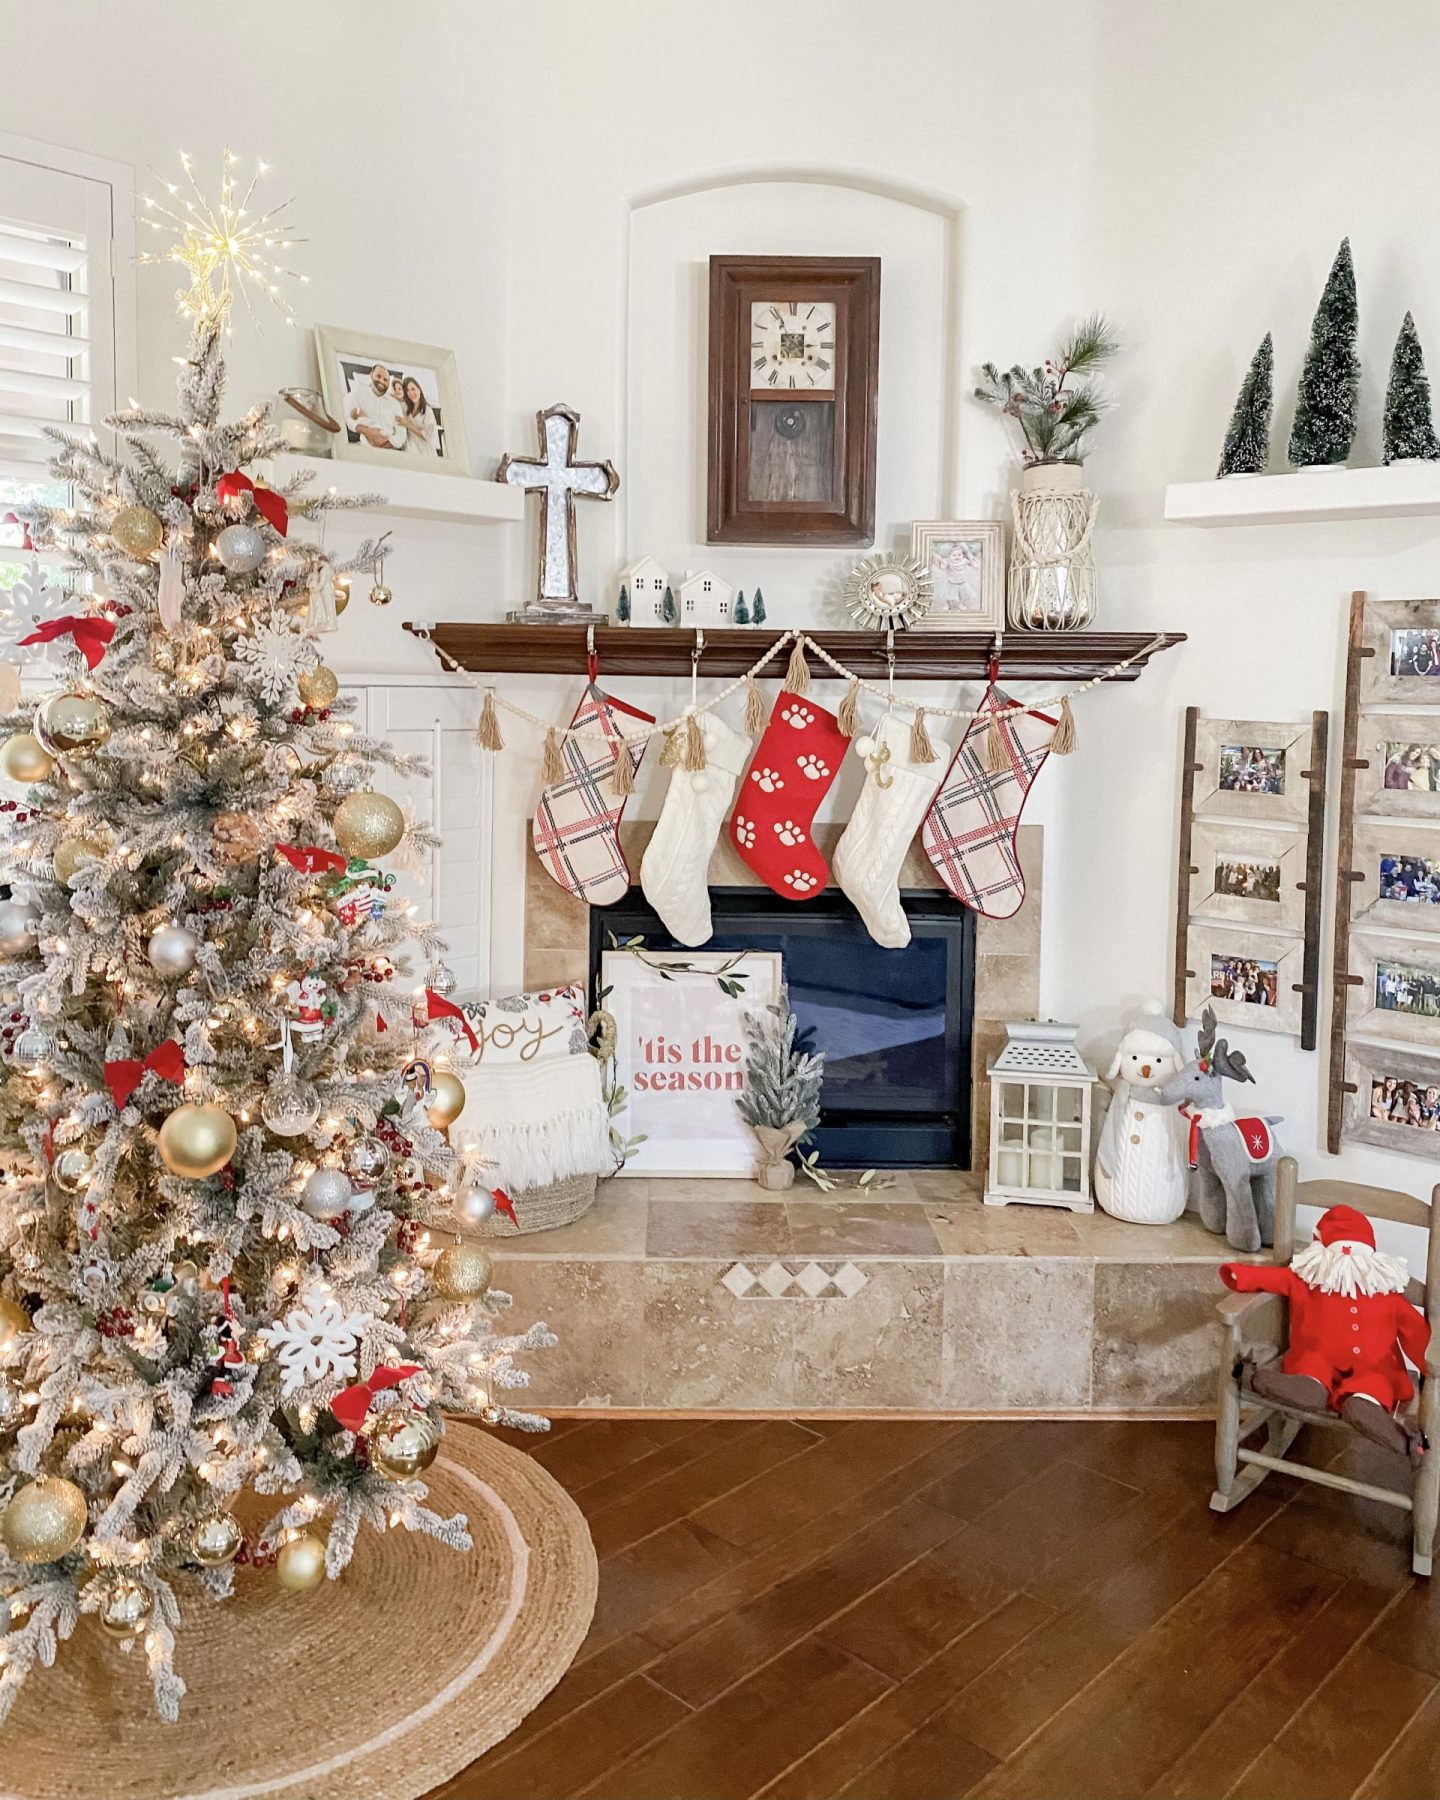 Christmas Home Tour Holiday Decor Flocked Tree Fireplace